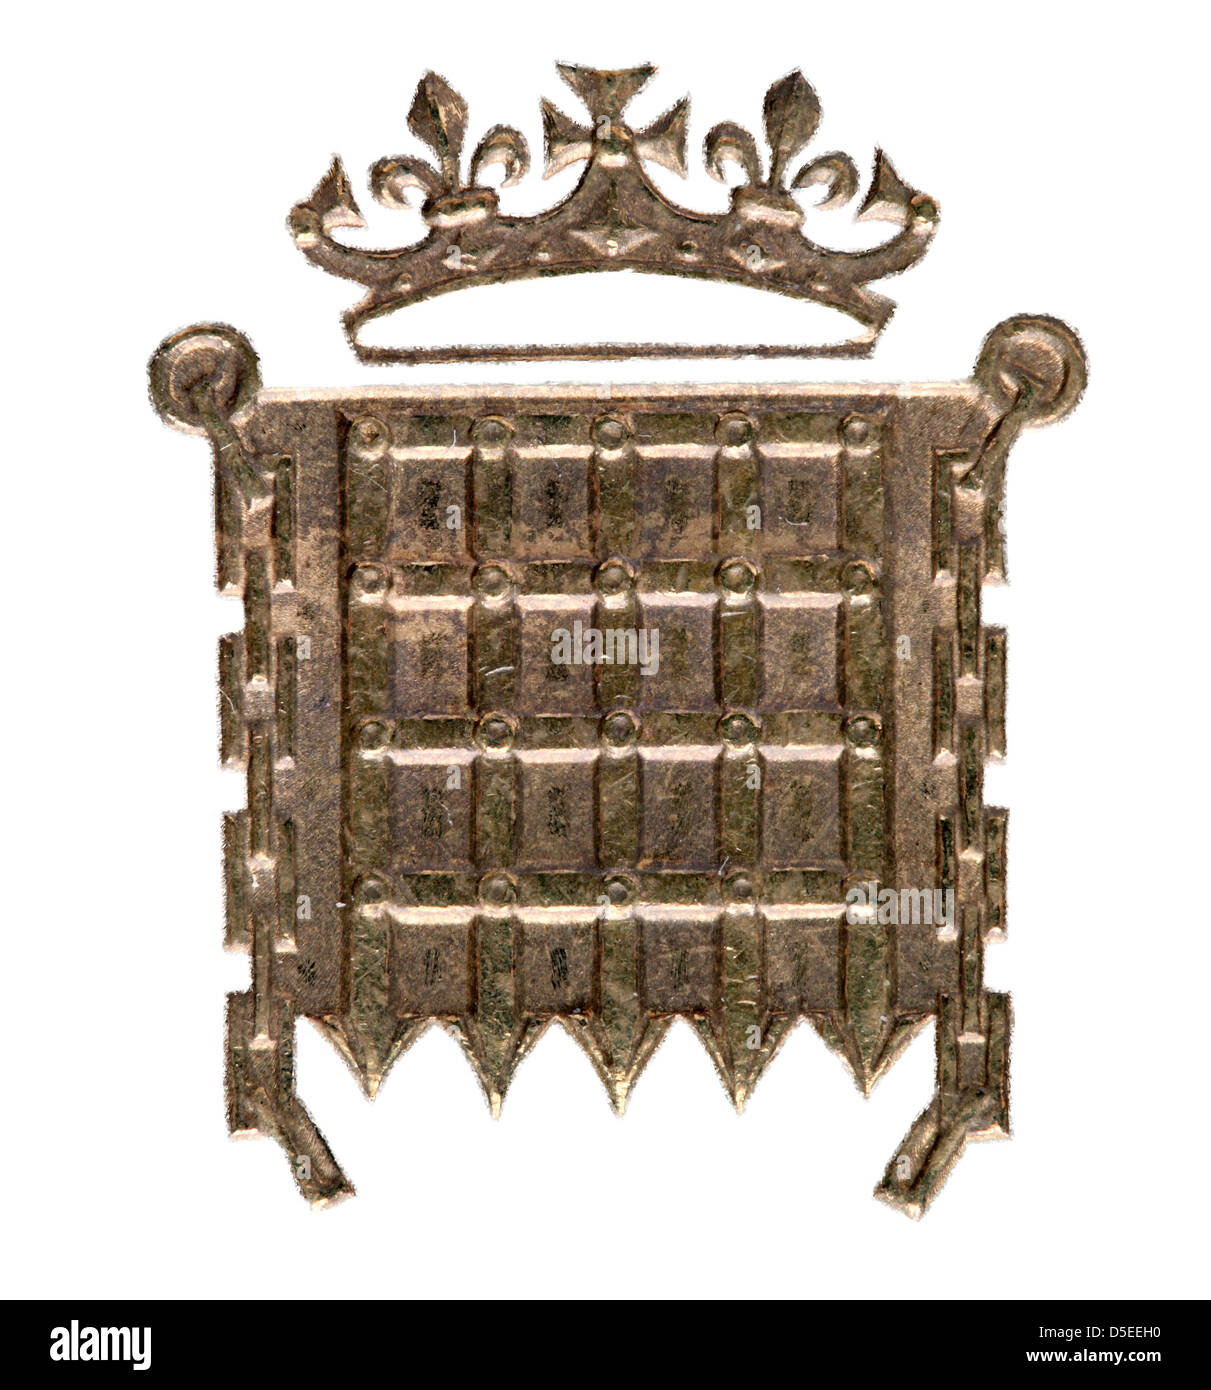 Crowned portcullis 3 Pence coin, UK, 1965, on white background - Stock Image